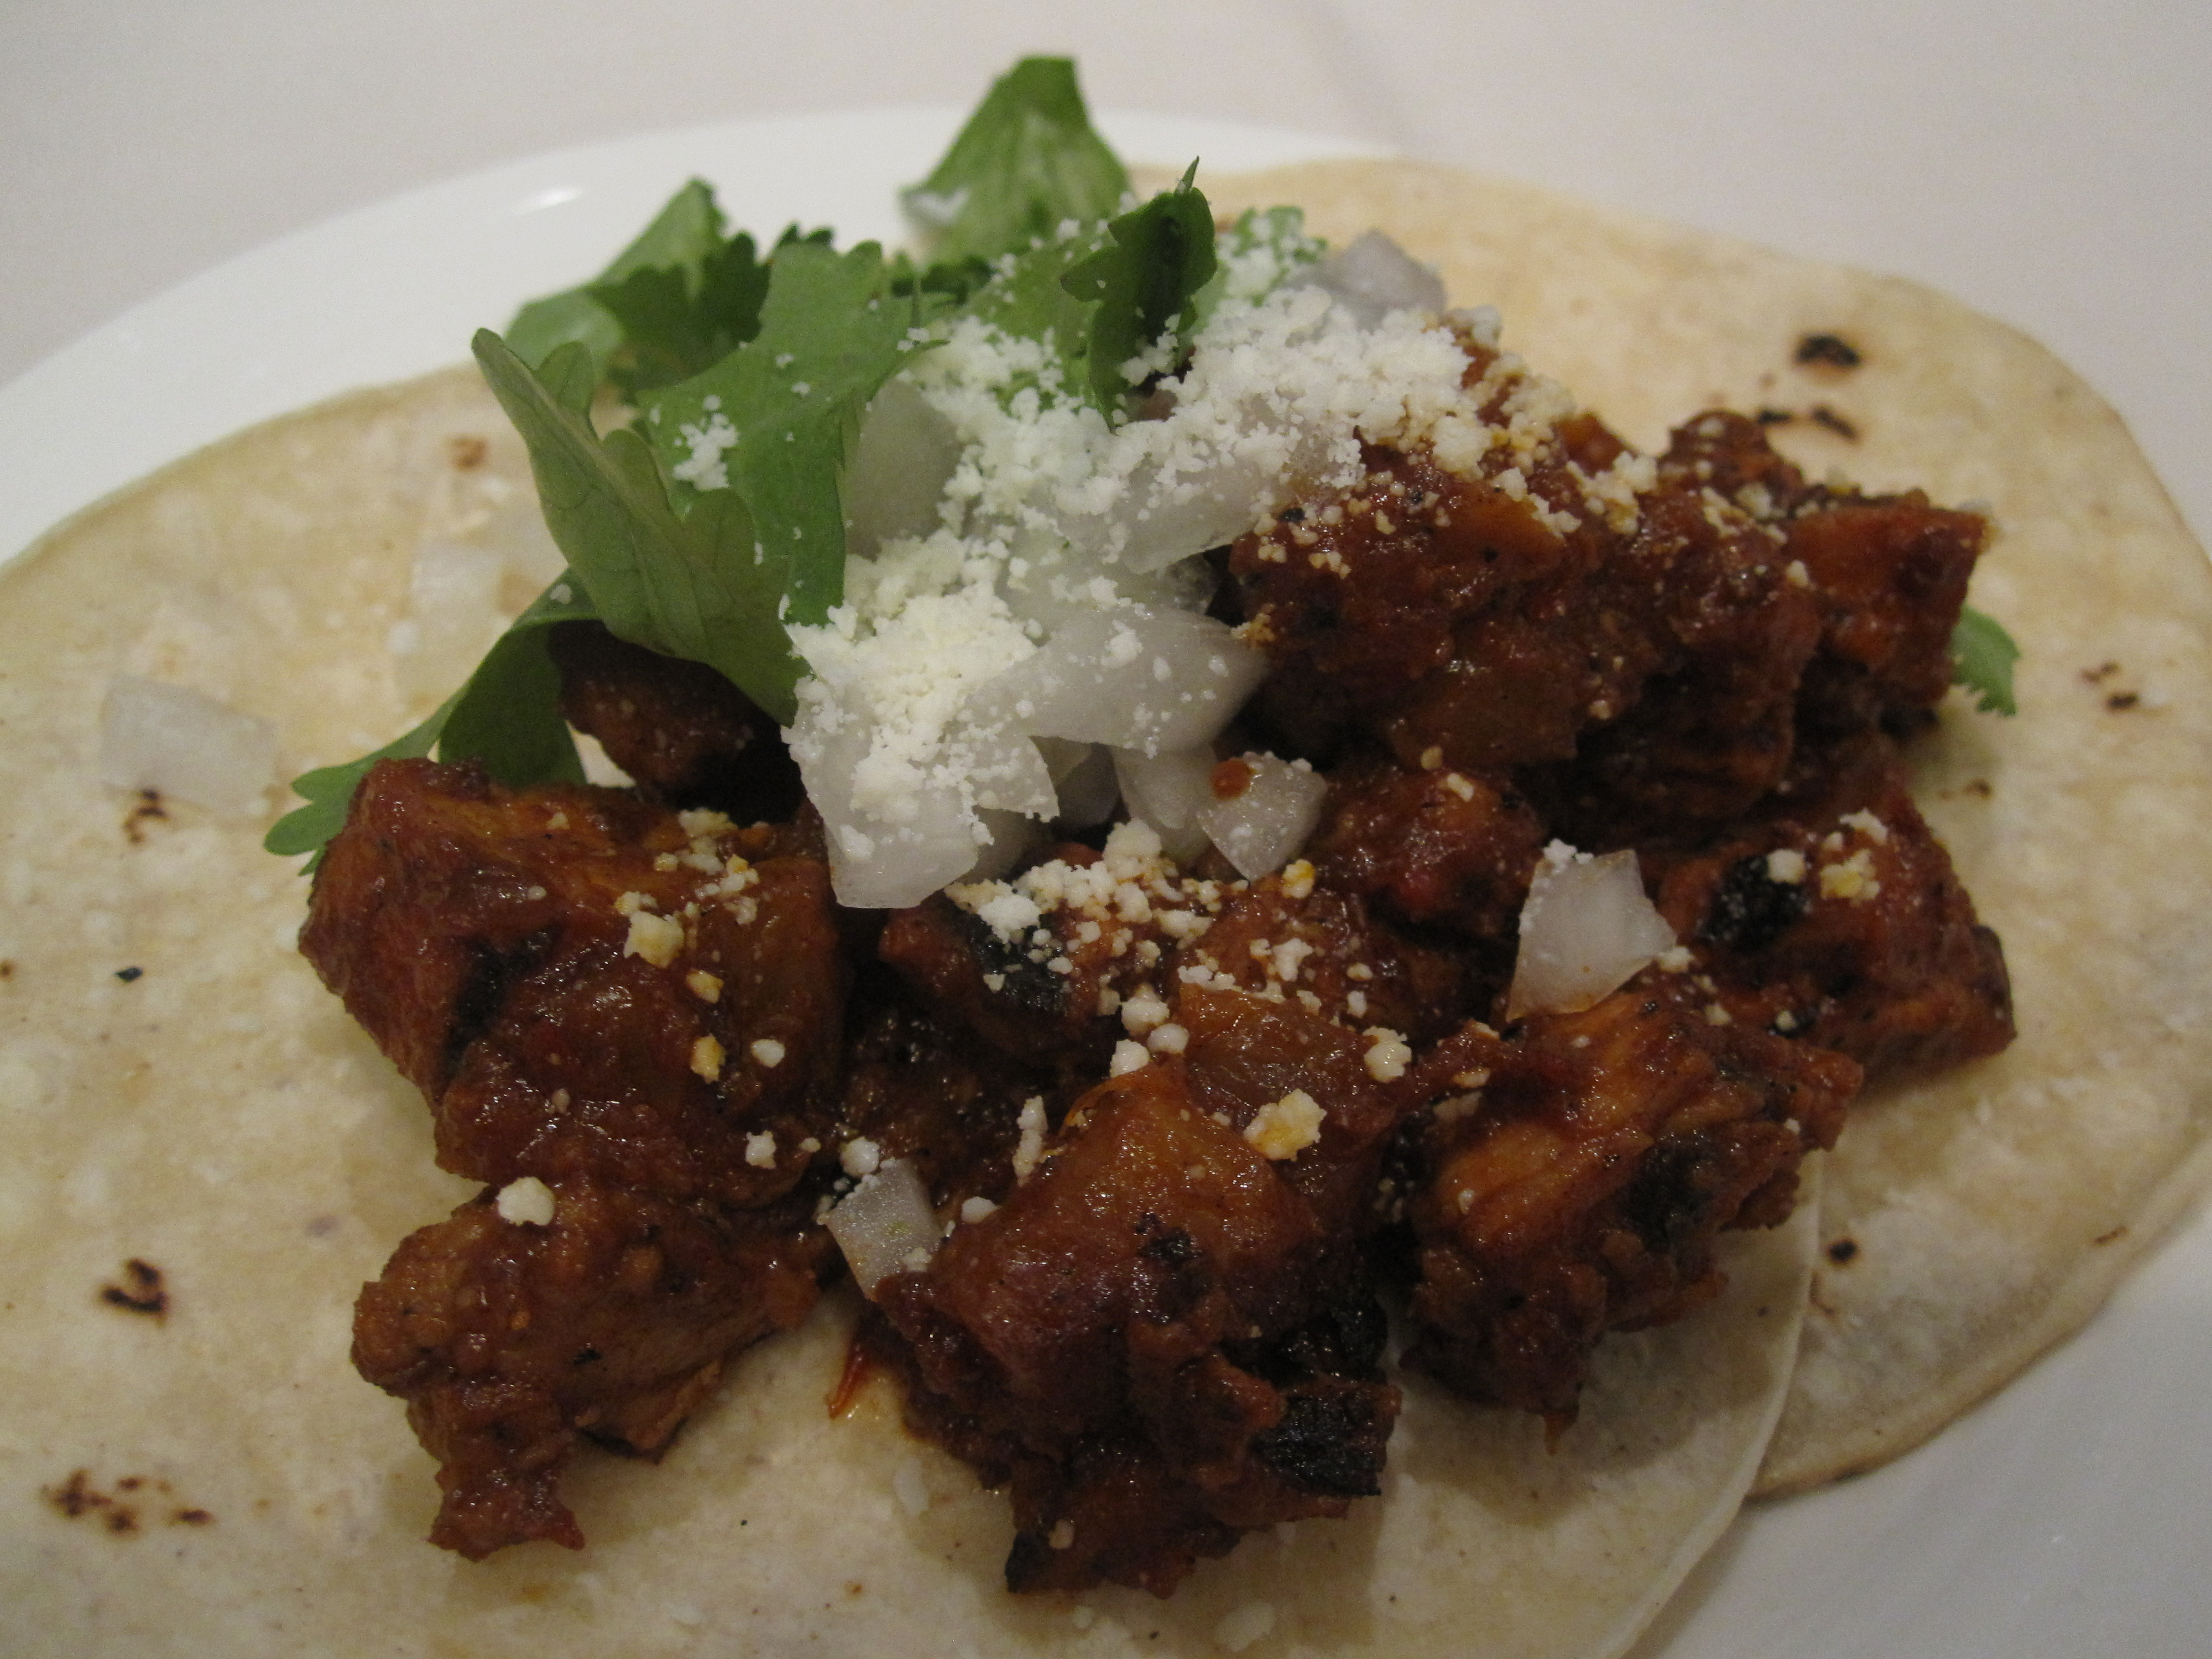 Tacos al pastor: yum! I think I need to make these.